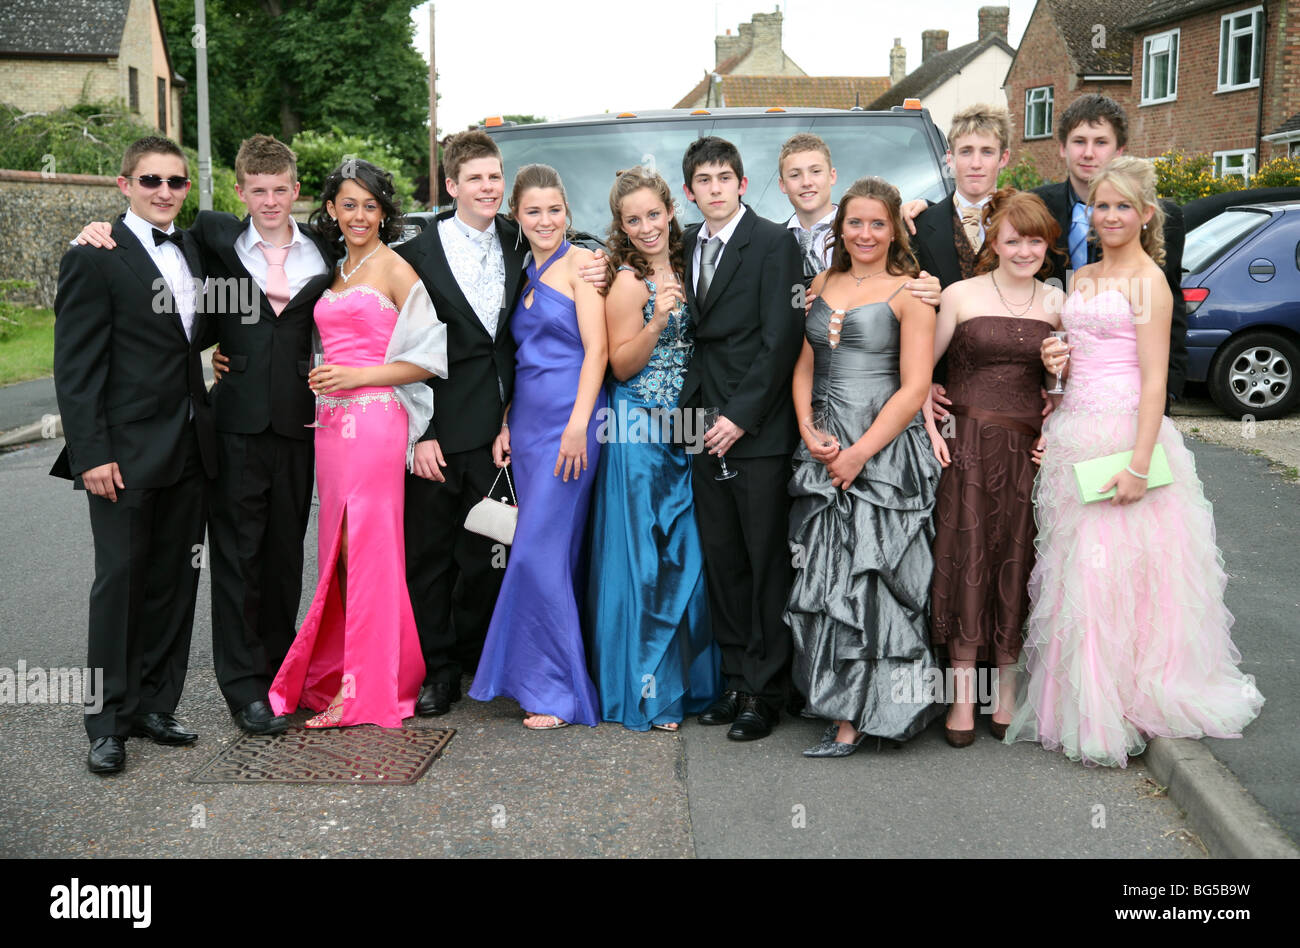 British Teenage Boys And Girls Going To Their School Prom